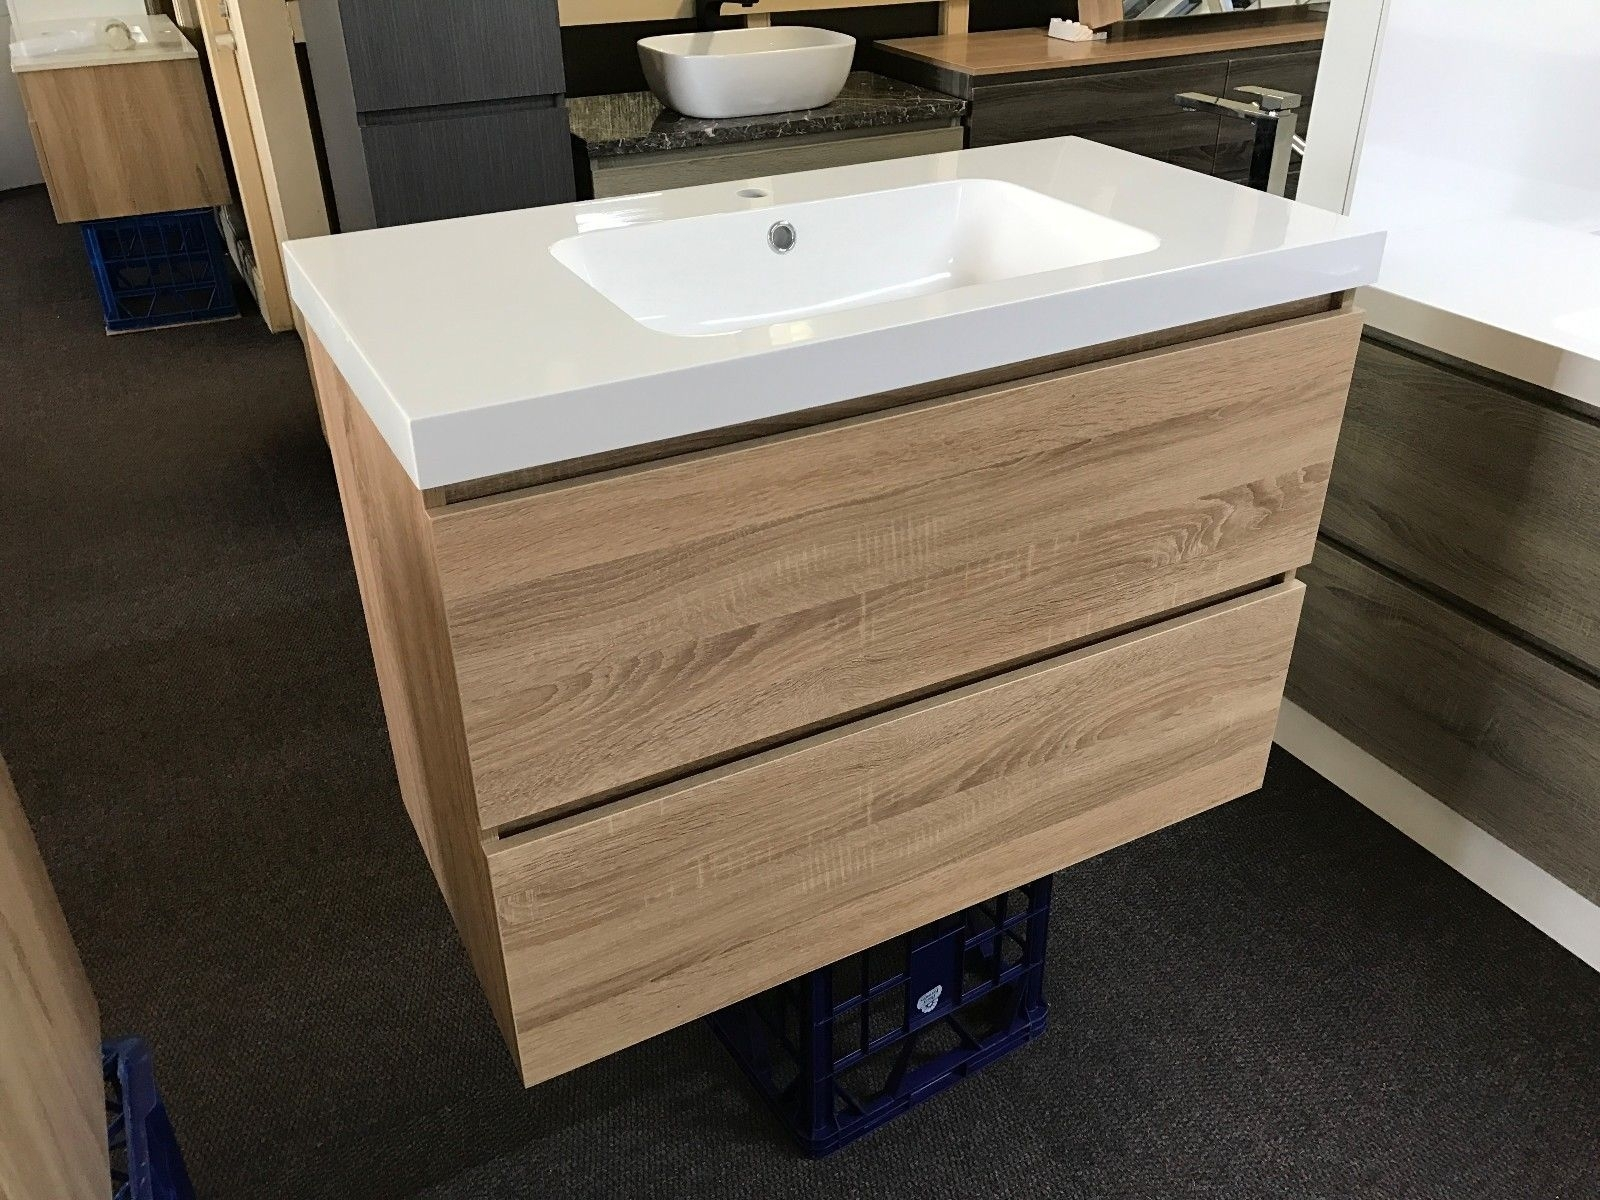 Bogetta 750mm White Oak Timber Wood Grain Bathroom